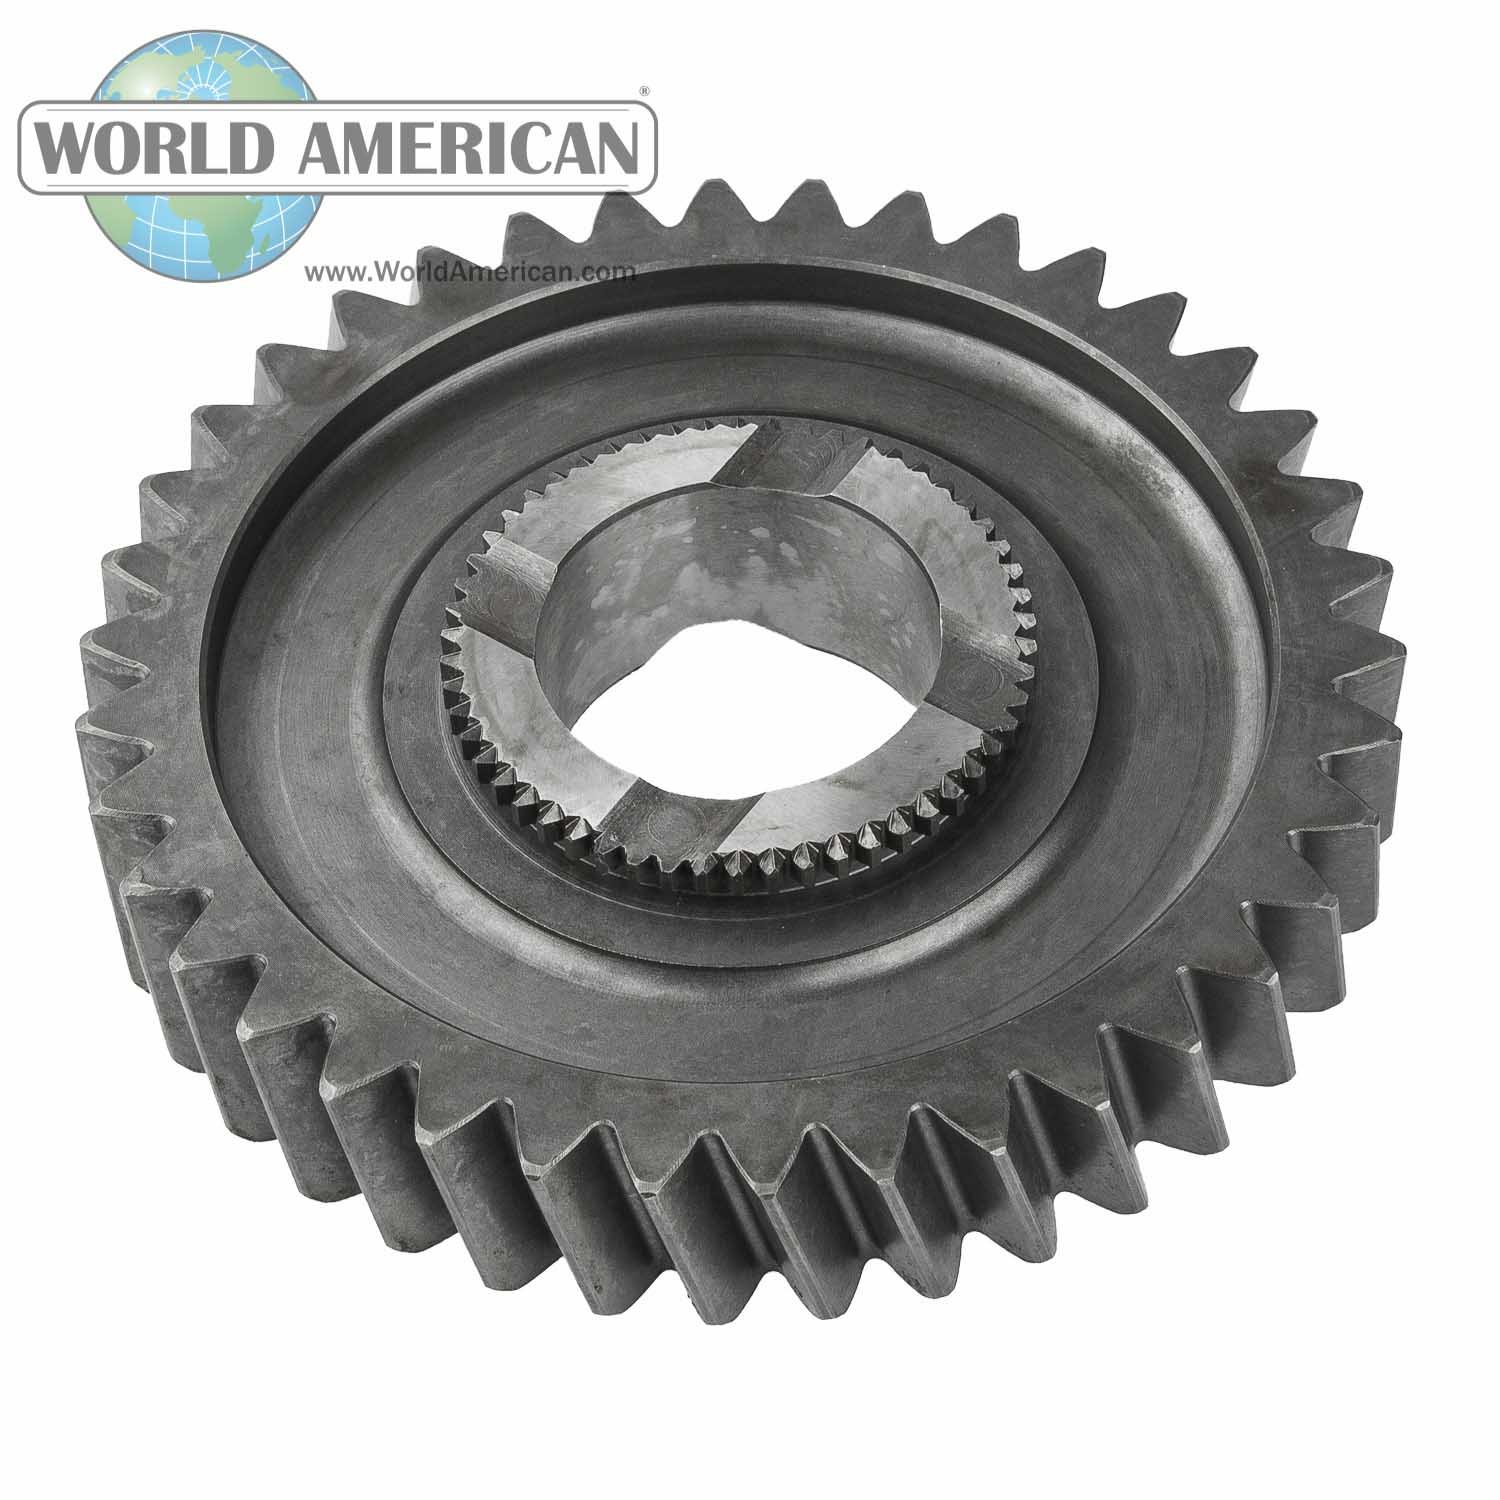 World American 4301688 Mainshaft 1st Gear